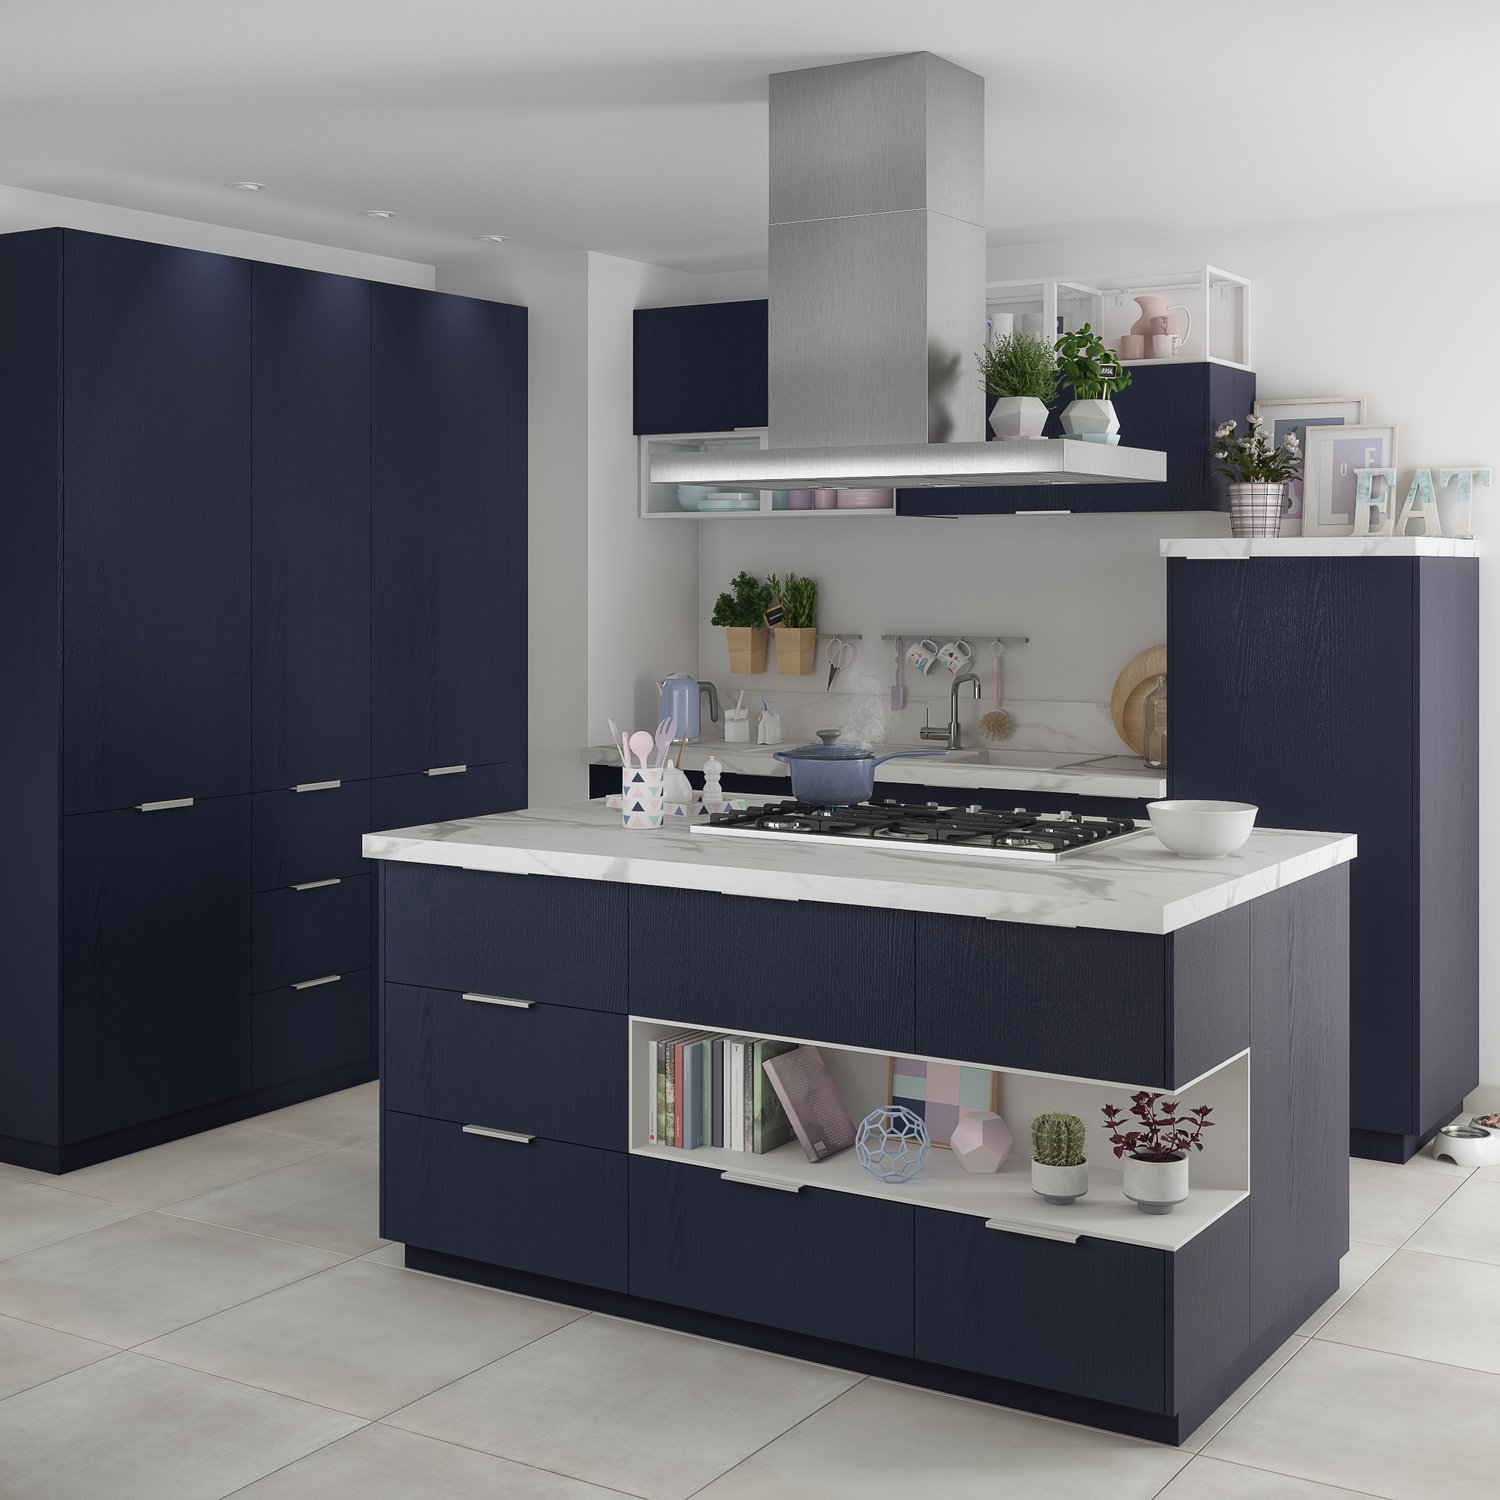 ilot central et accessoires de cuisine assortis leroy merlin. Black Bedroom Furniture Sets. Home Design Ideas